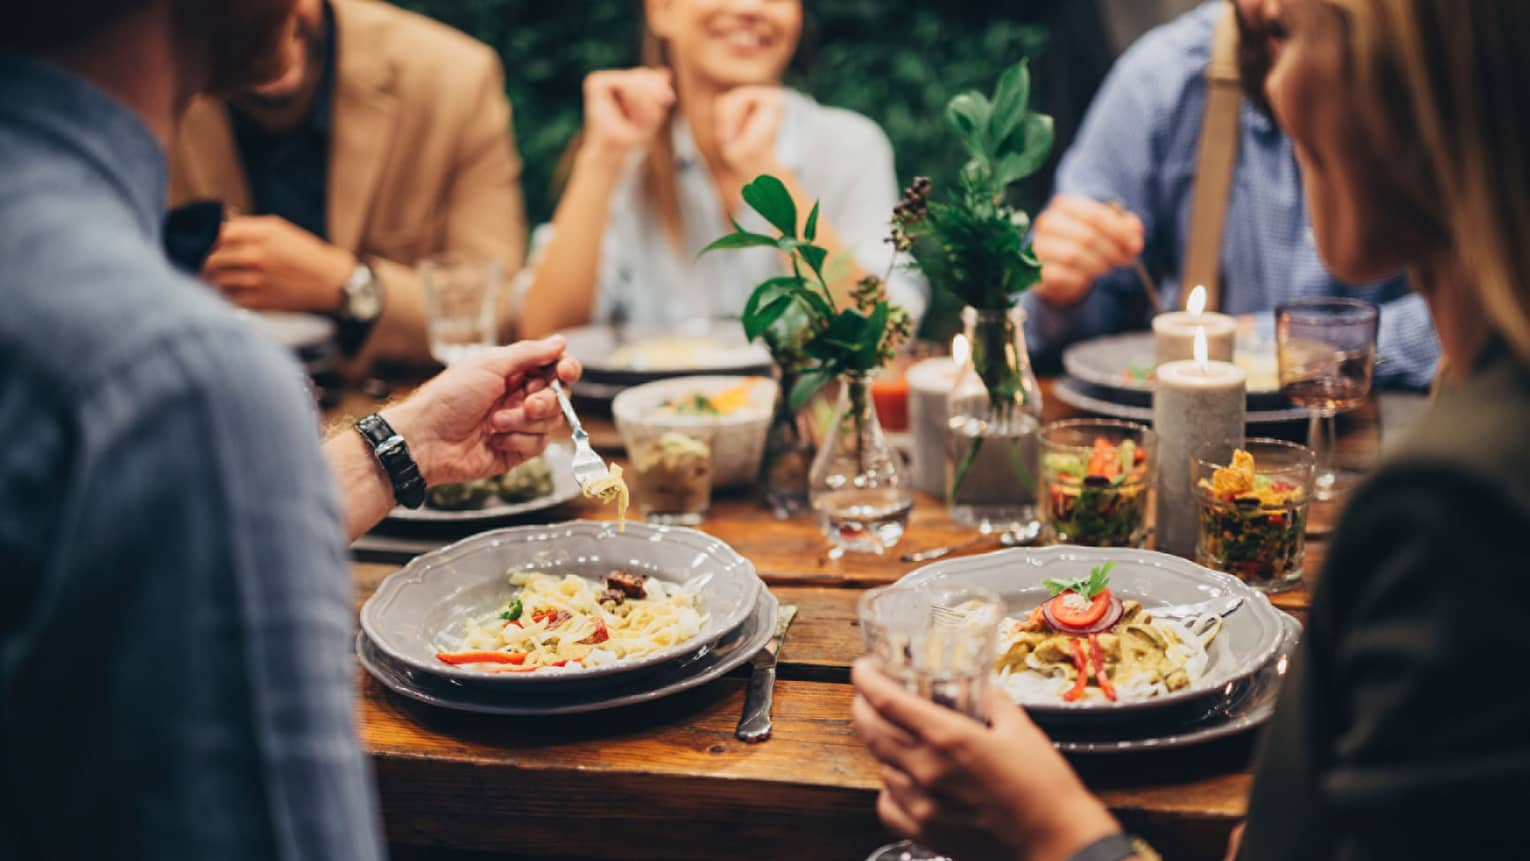 Close-up of group of friends around gourmet pasta dishes on outdoor table